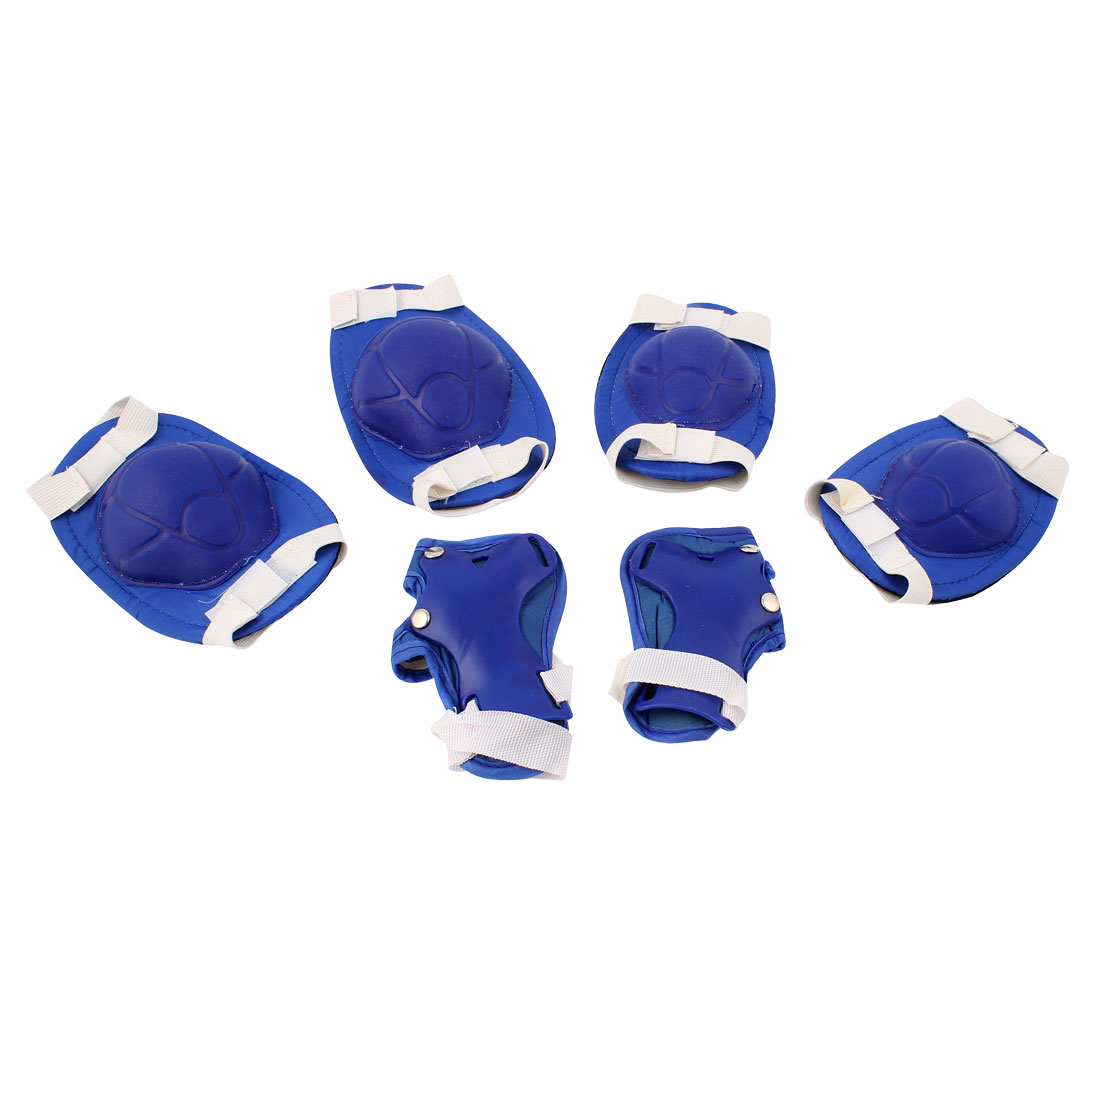 6 in 1 Skiing Skating Palm Elbow Knee Support Protector Blue